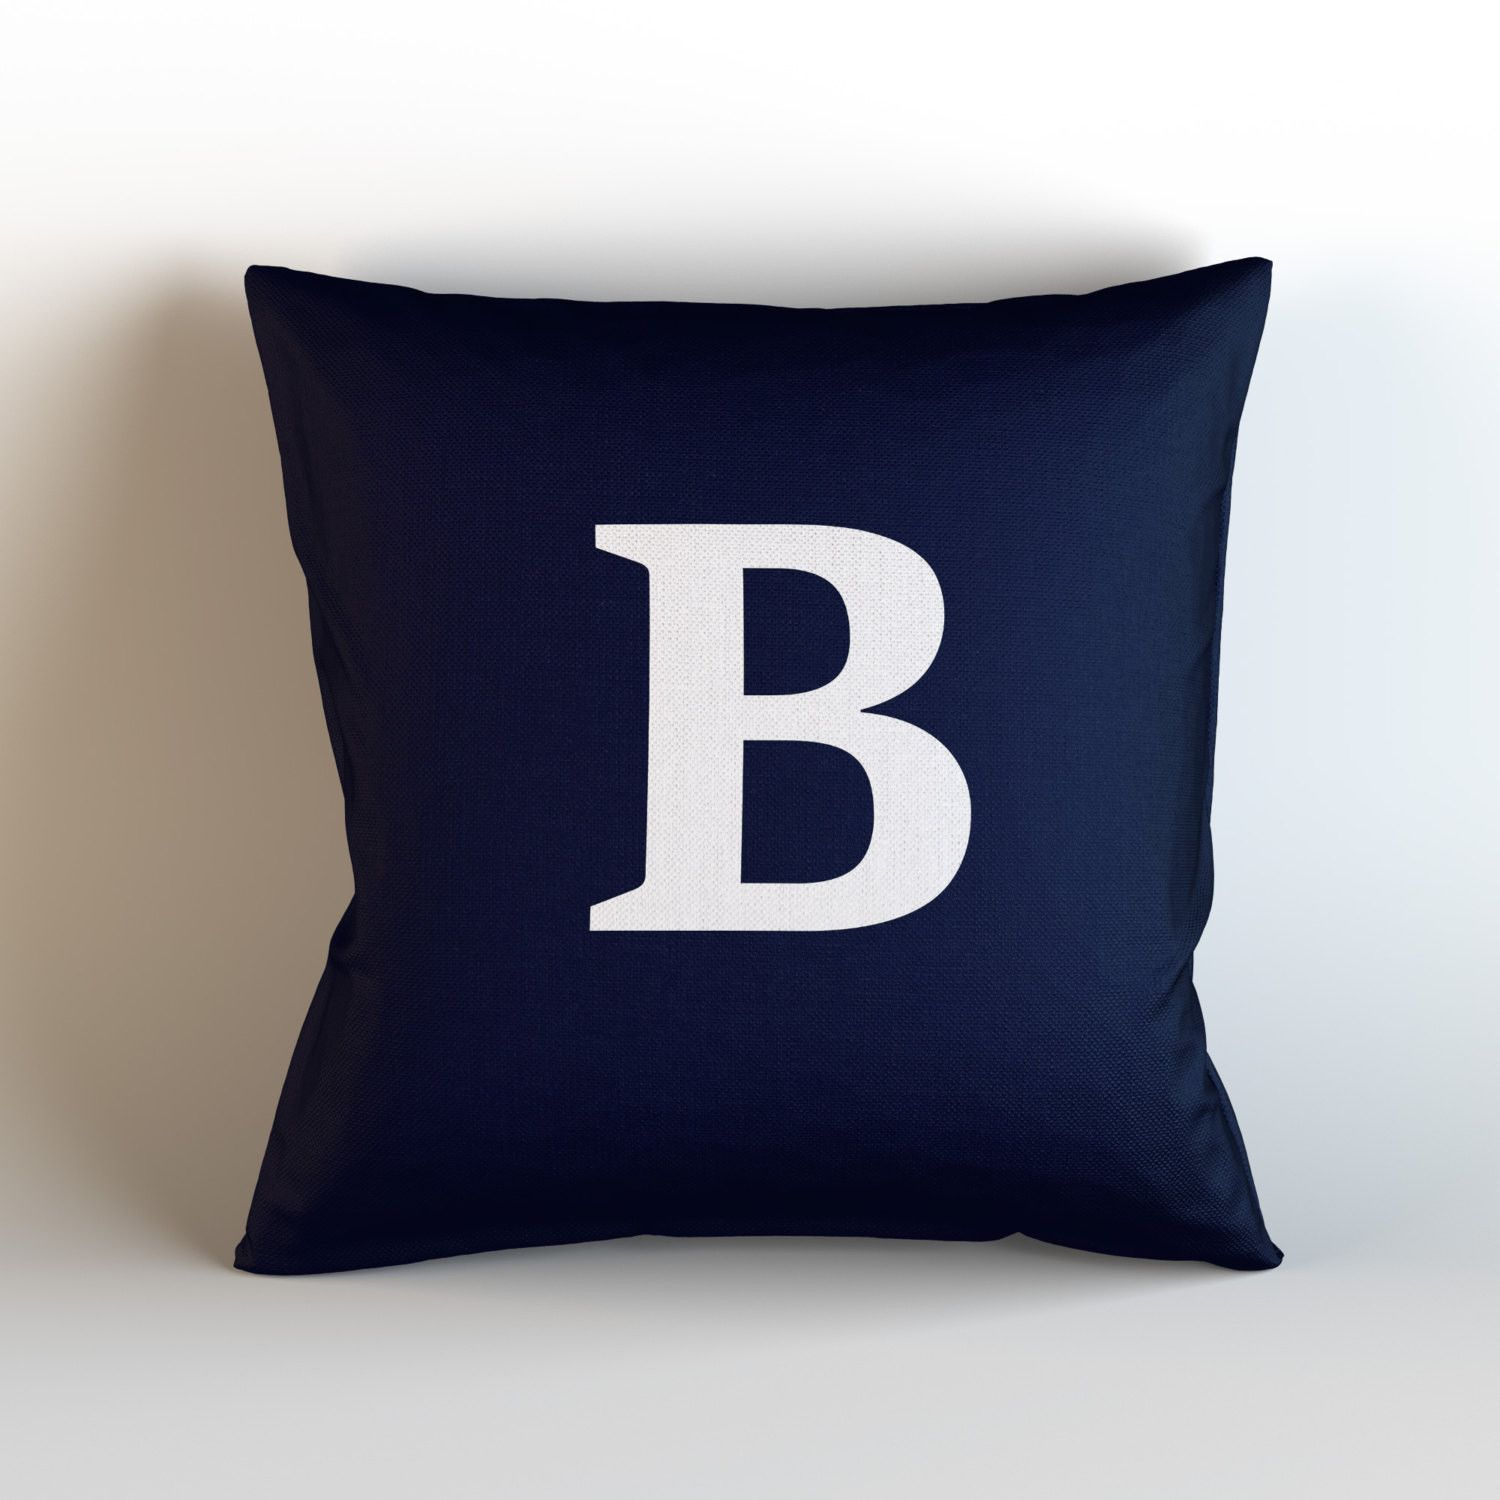 Letter Decorative Throw Pillow Cover, Navy